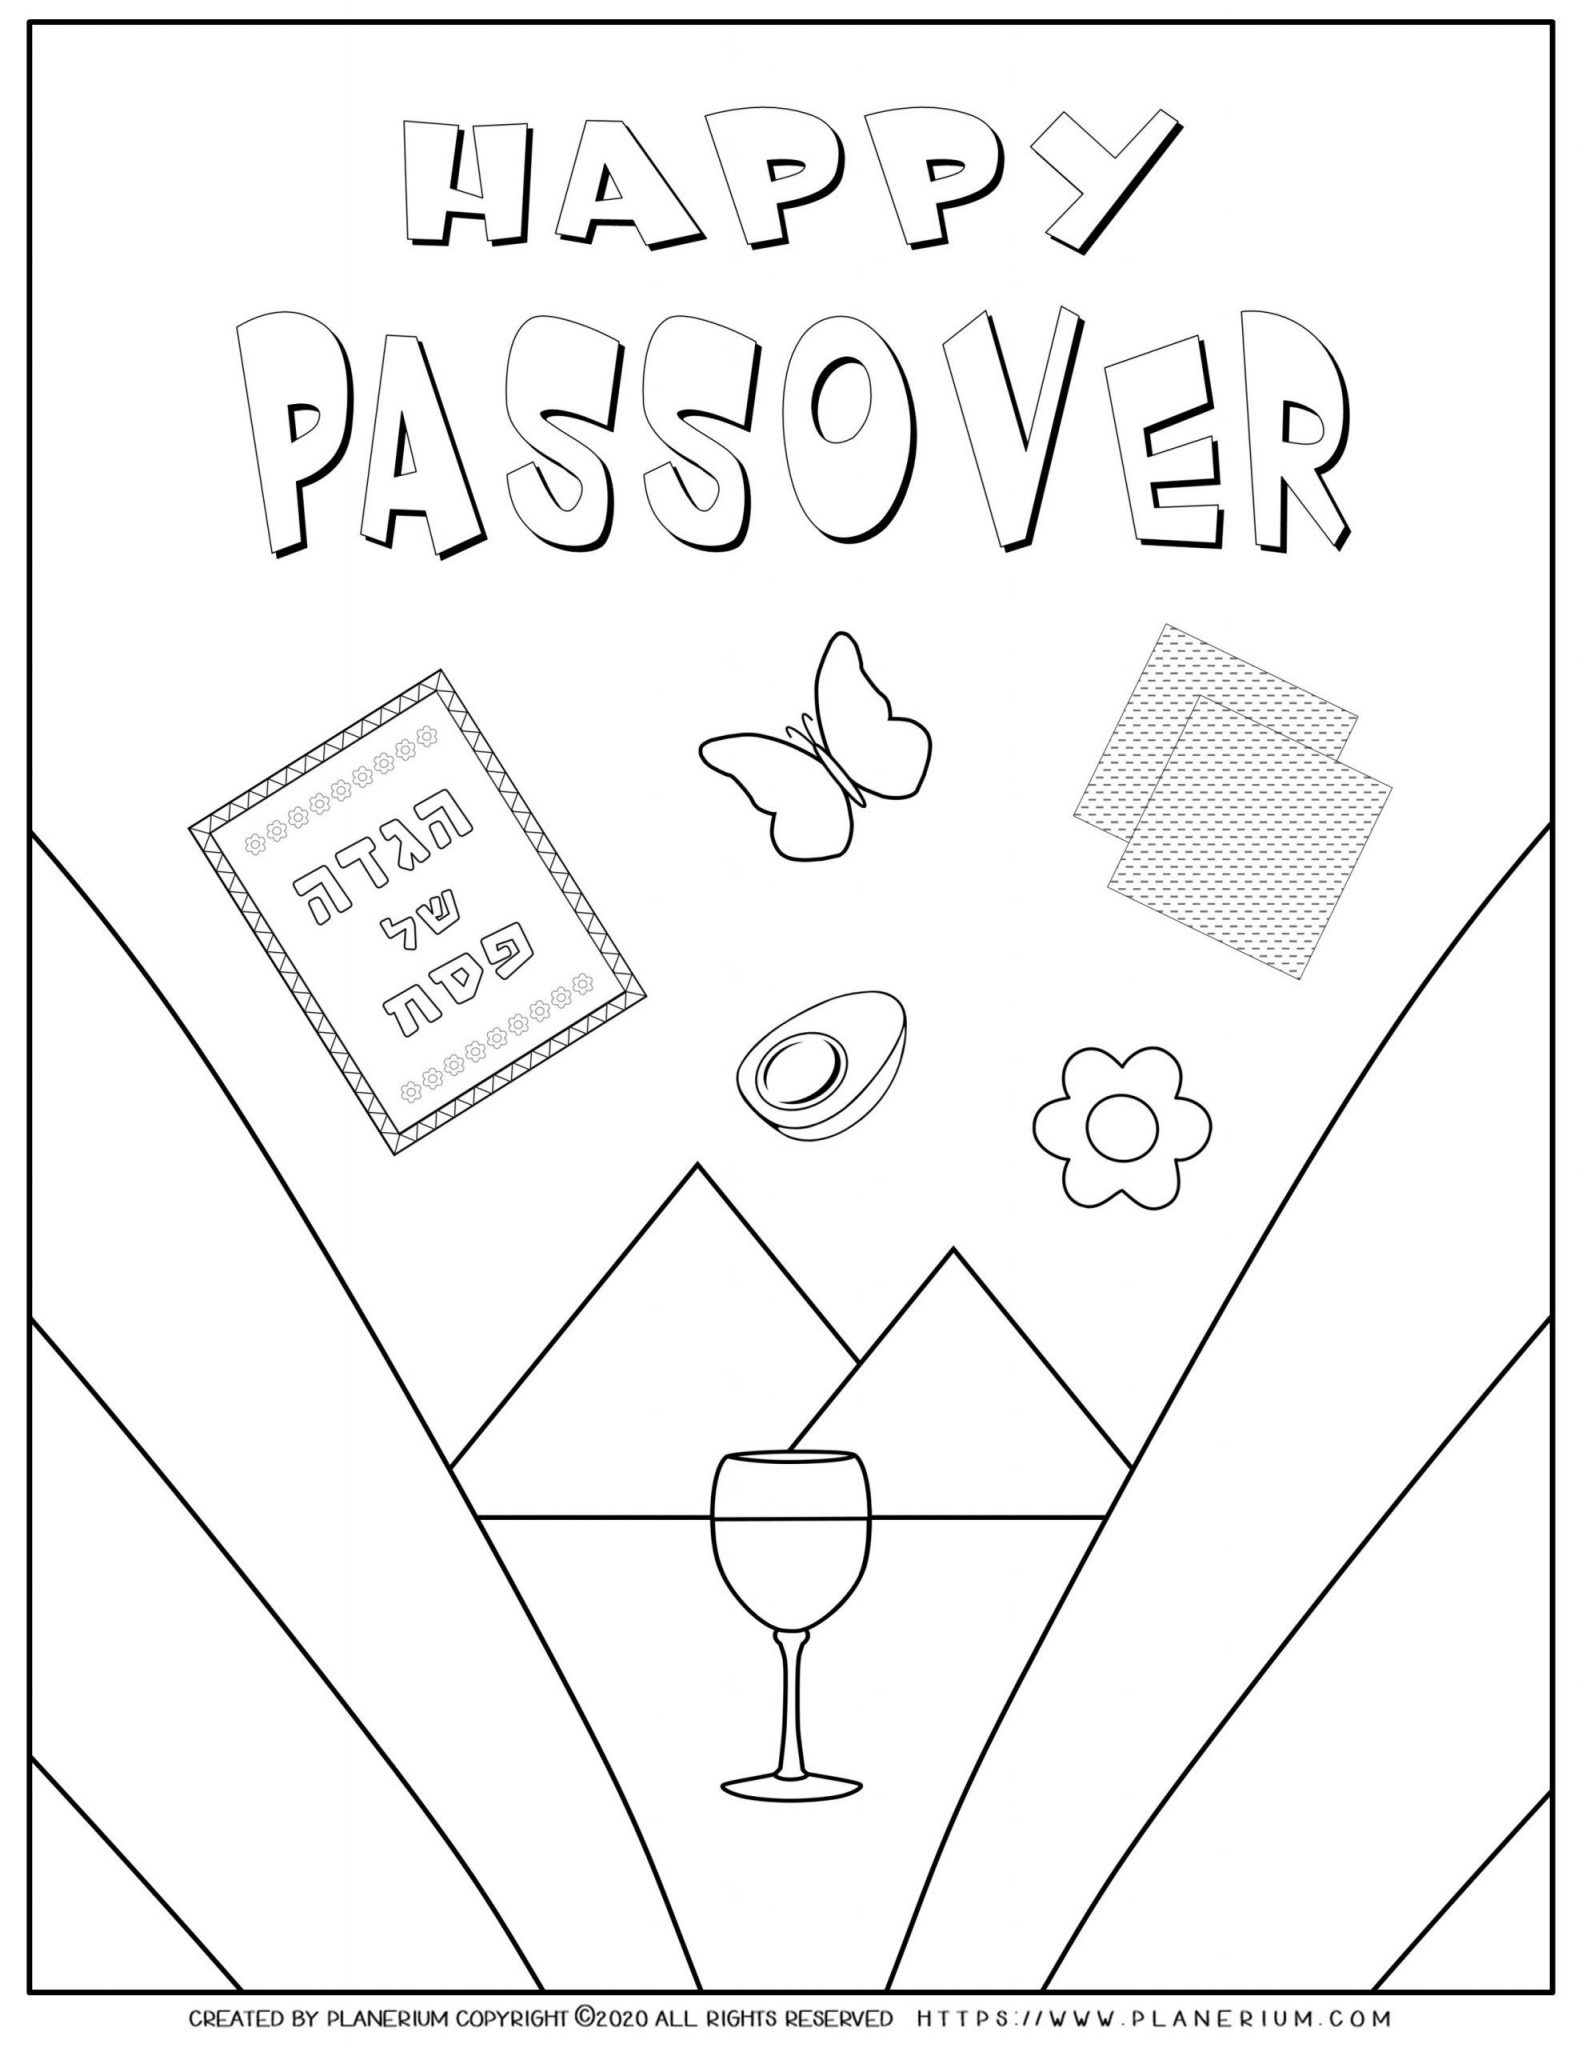 Passover coloring page - Happy Passover - English title